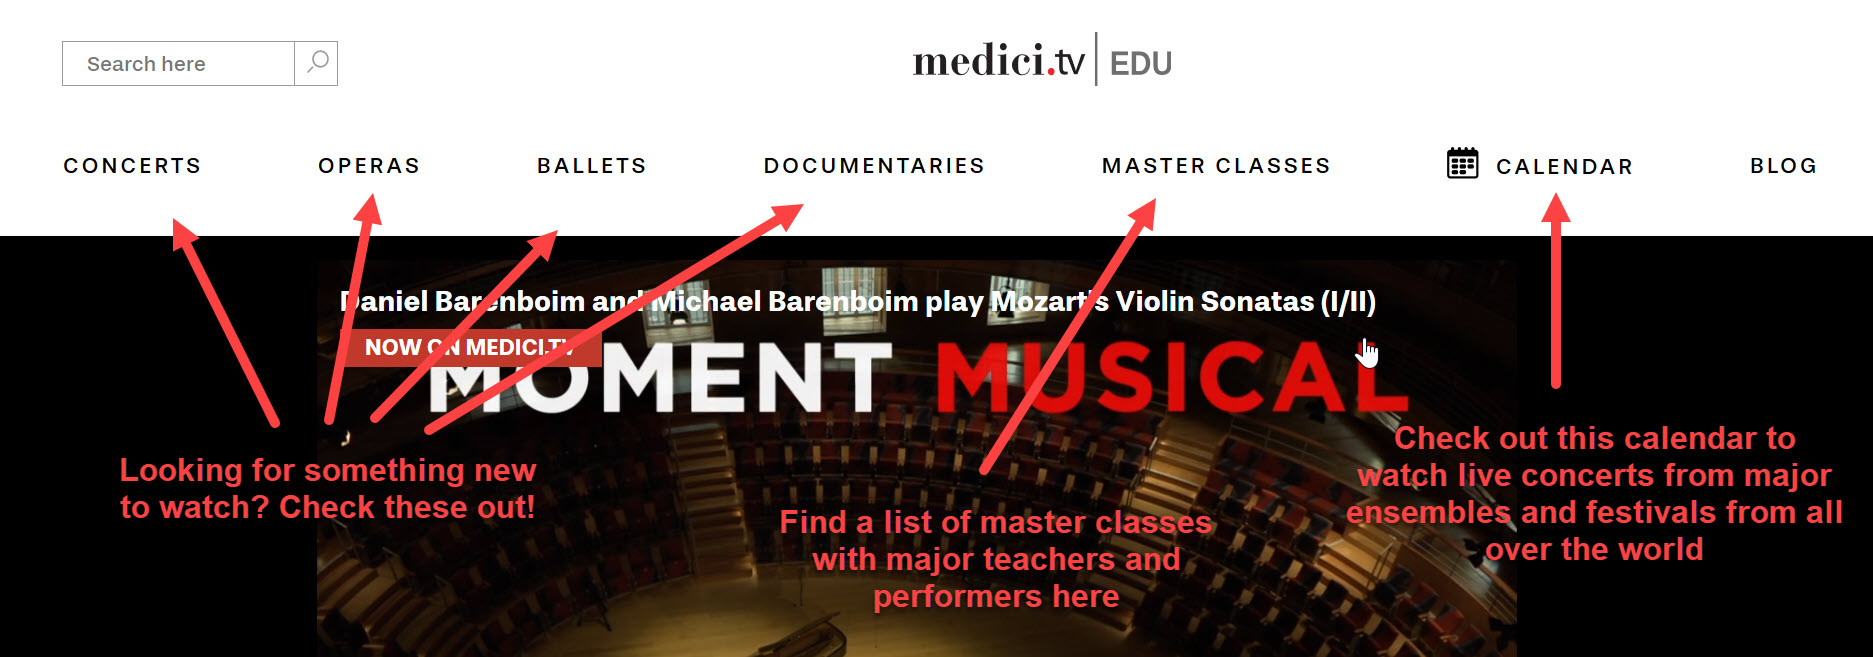 An image from the Medici.tv homepage highlighting the top level menu options of concerto, operas, ballets, documentaries, master classes, and calendar of live events.